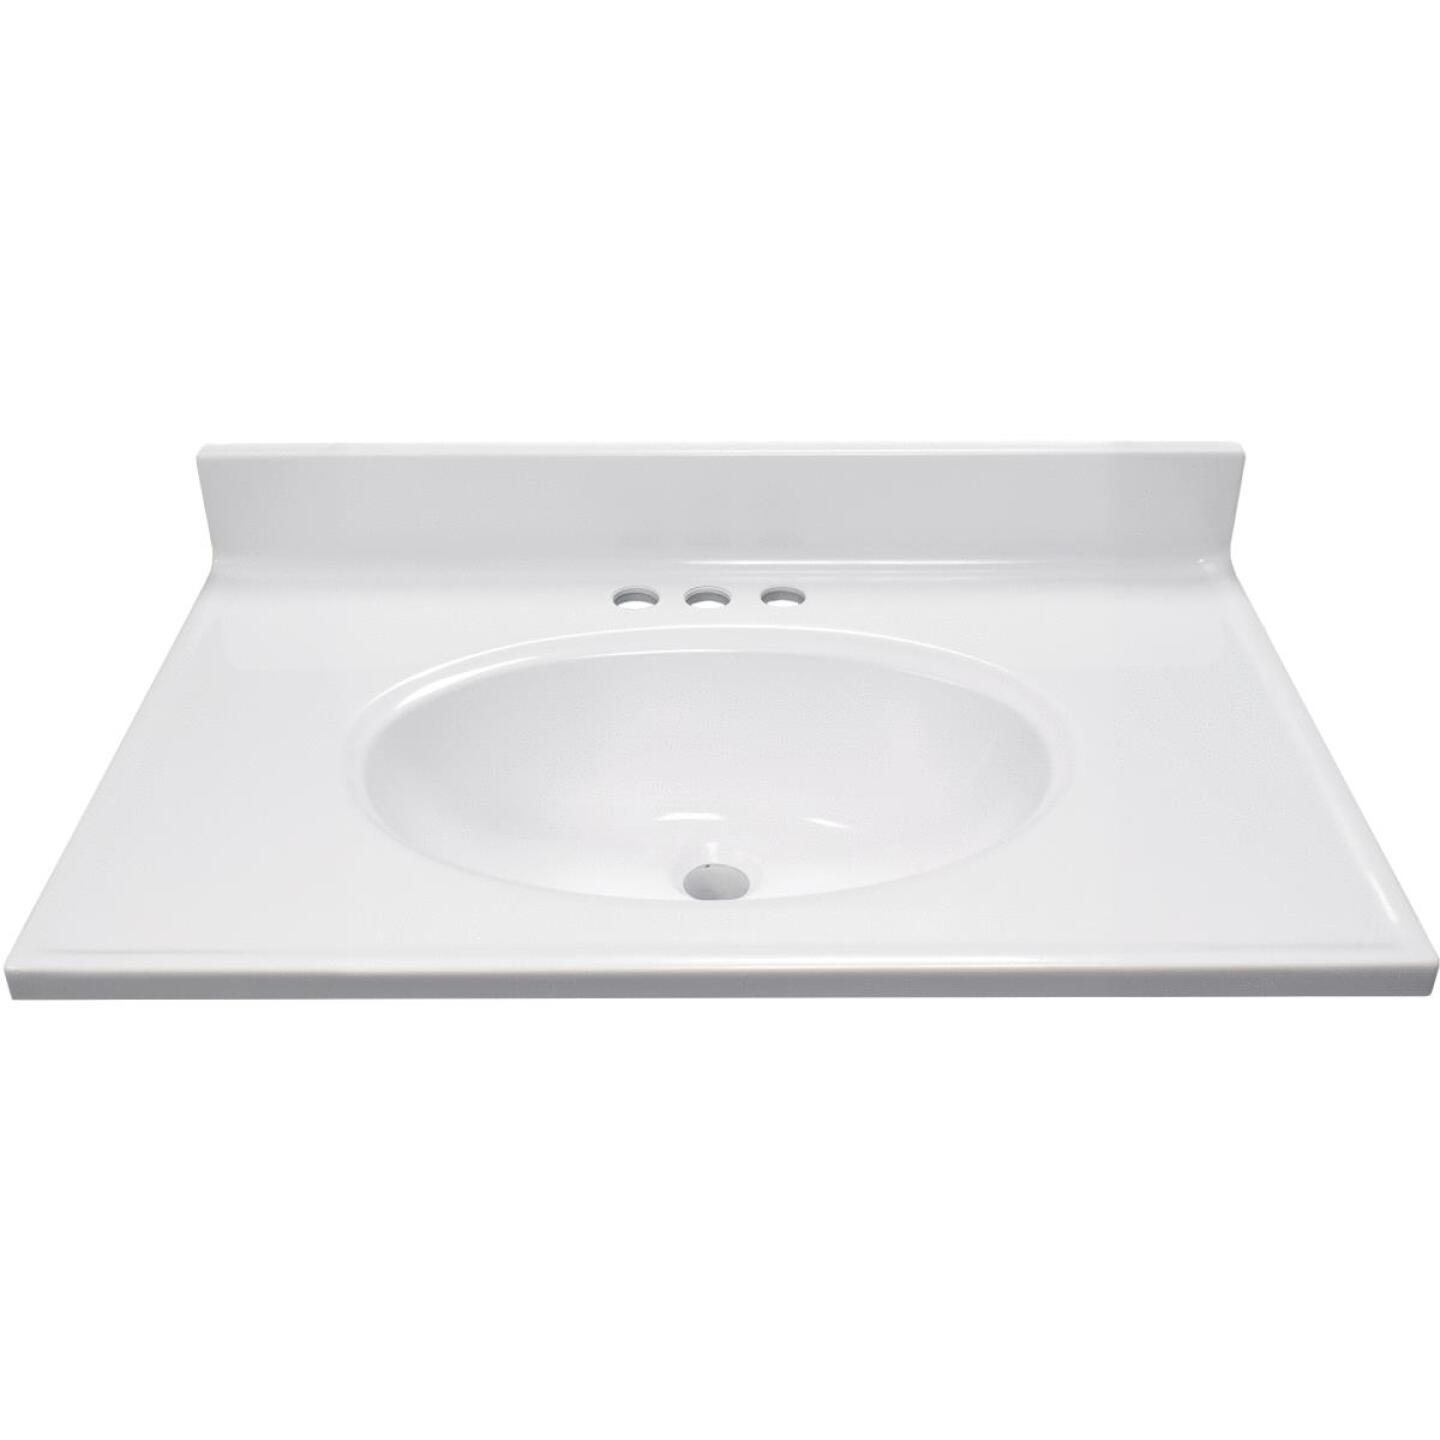 Modular Vanity Tops 31 In. W x 19 In. D Solid White Cultured Marble Vanity Top with Oval Bowl Image 2